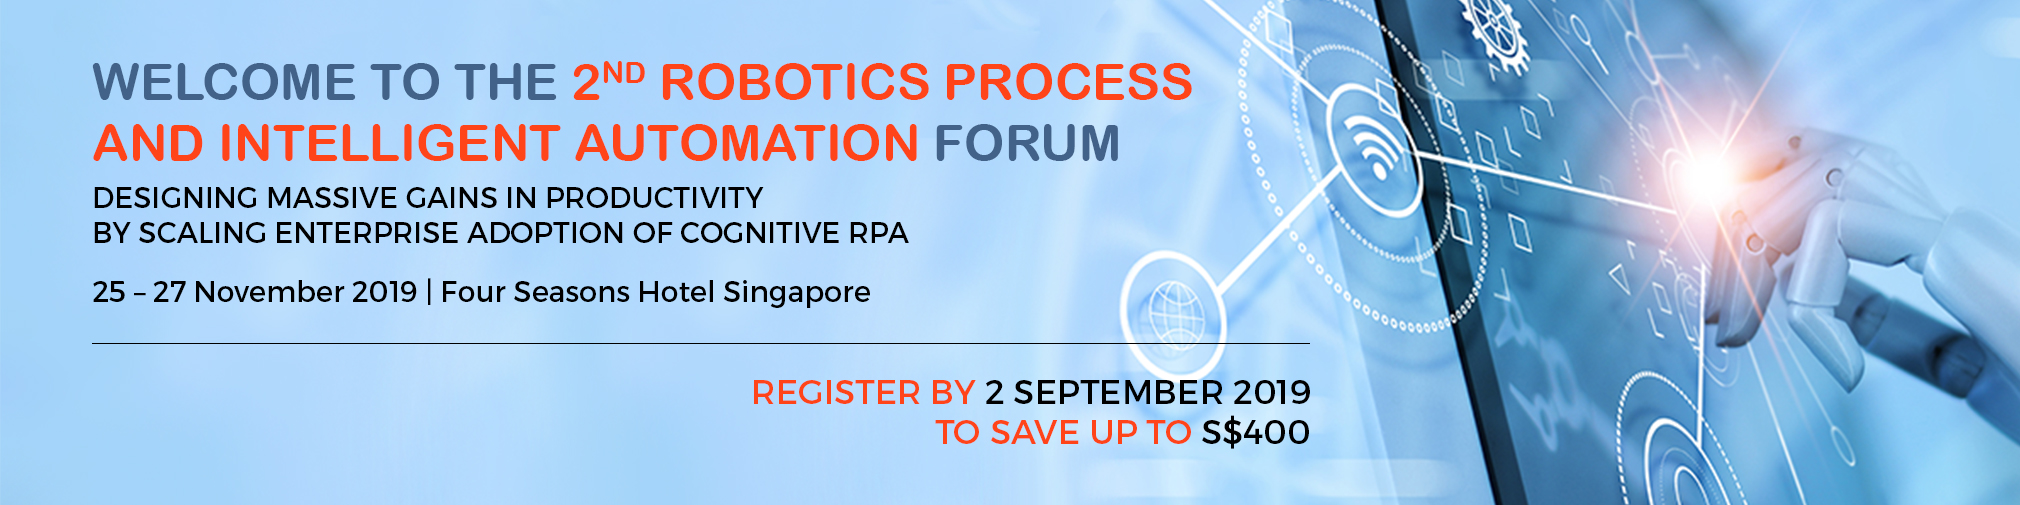 2nd Robotics Process And Intelligent Automation Forum